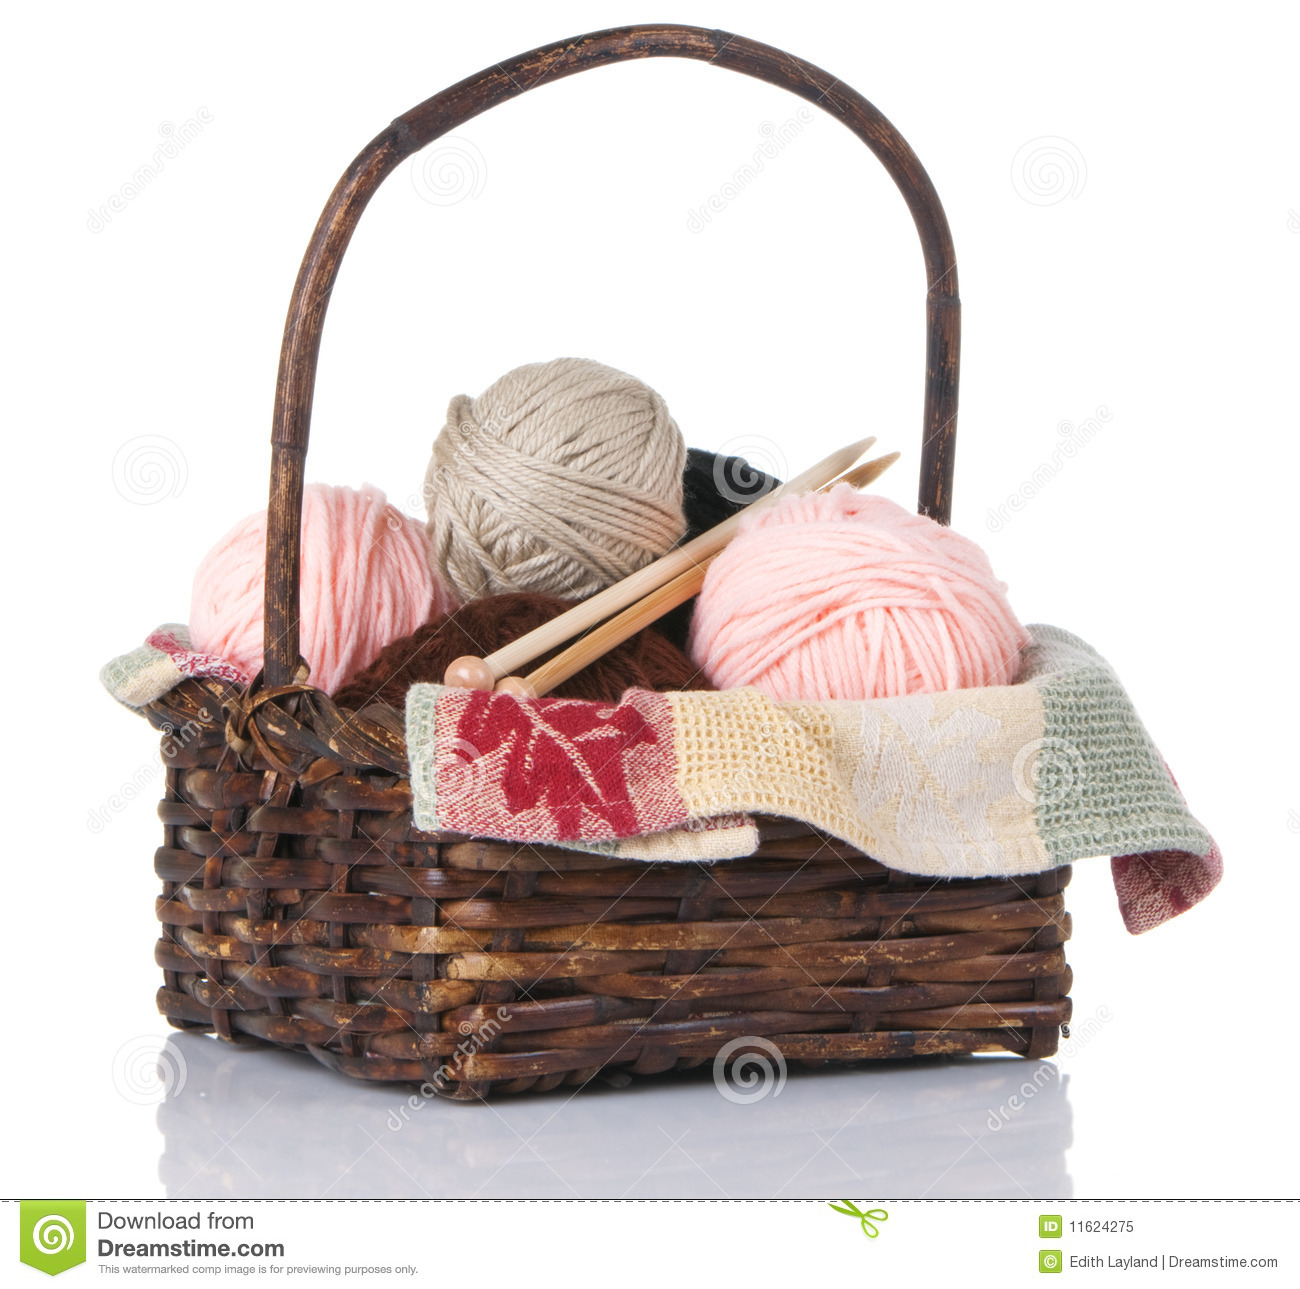 Knitting Basket Yarn : Knitting basket with yarn and needles royalty free stock